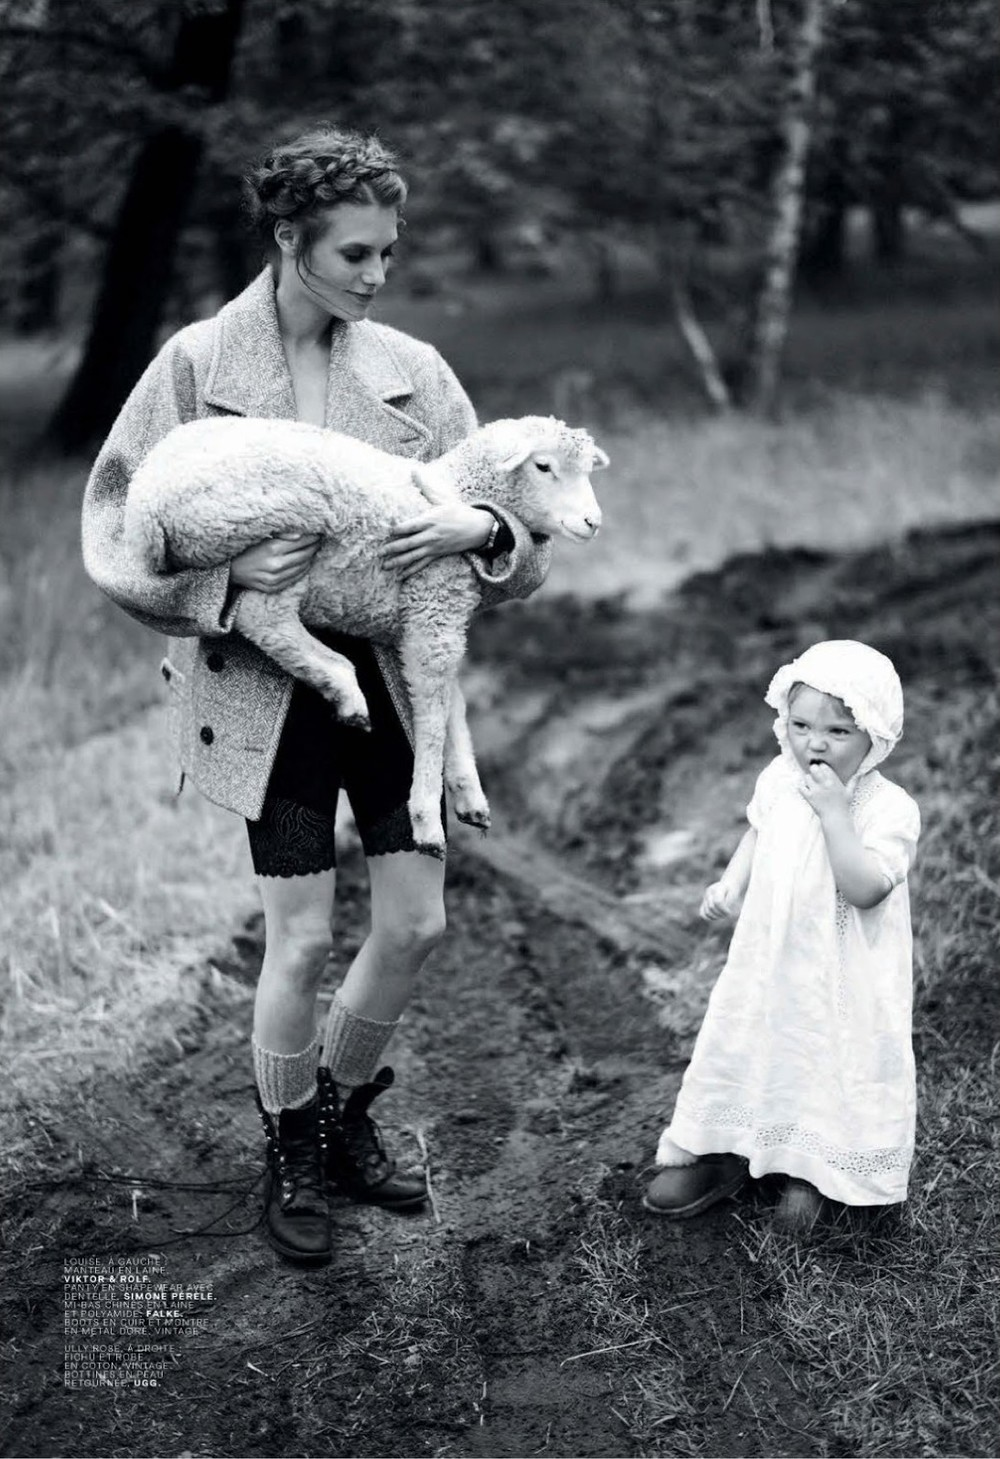 This image from Italian Vogue conveys how to go Amish in a modern way